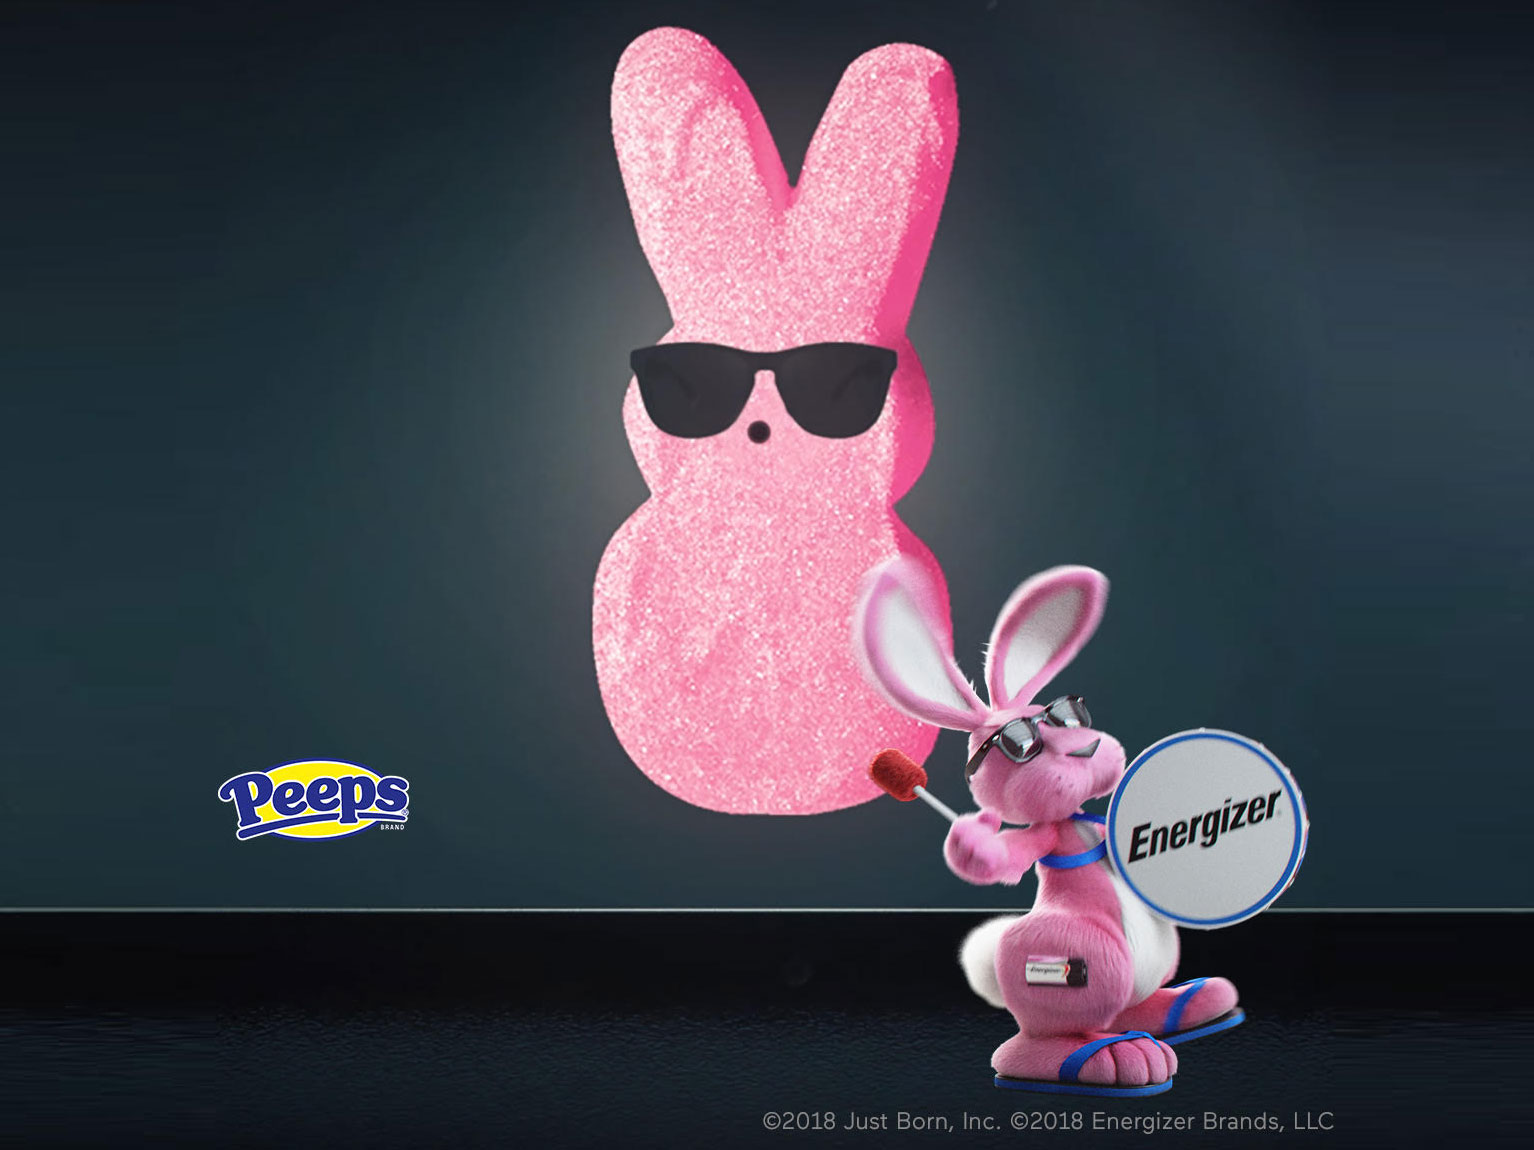 Peeps and the Energizer Bunny